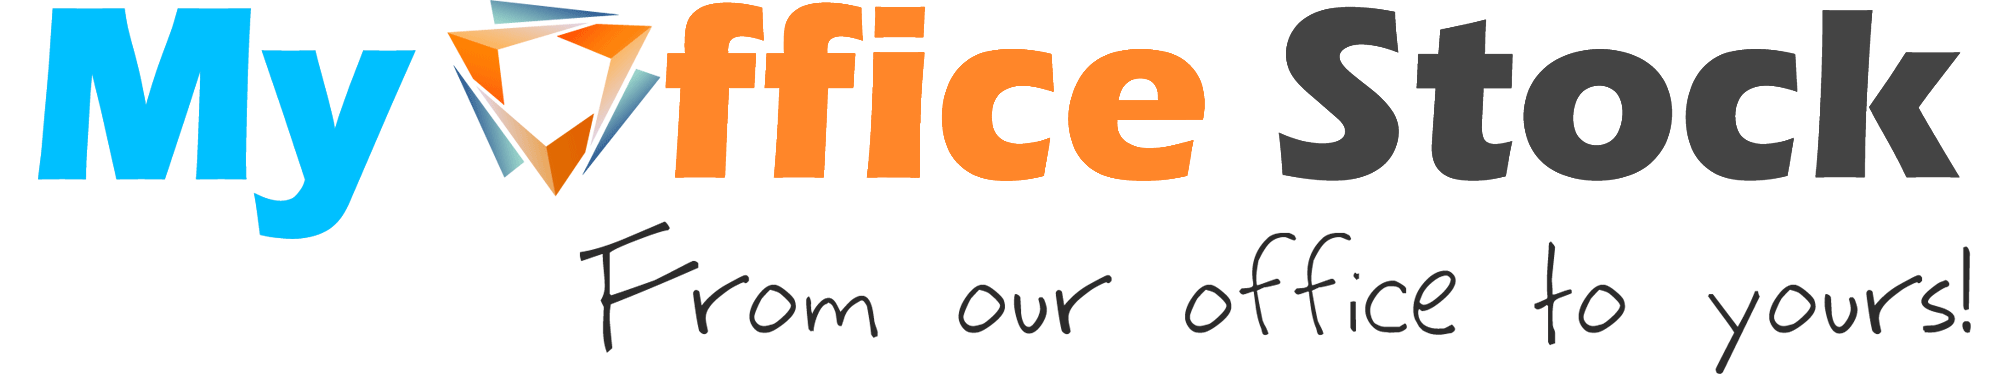 Read My Office Stock Reviews